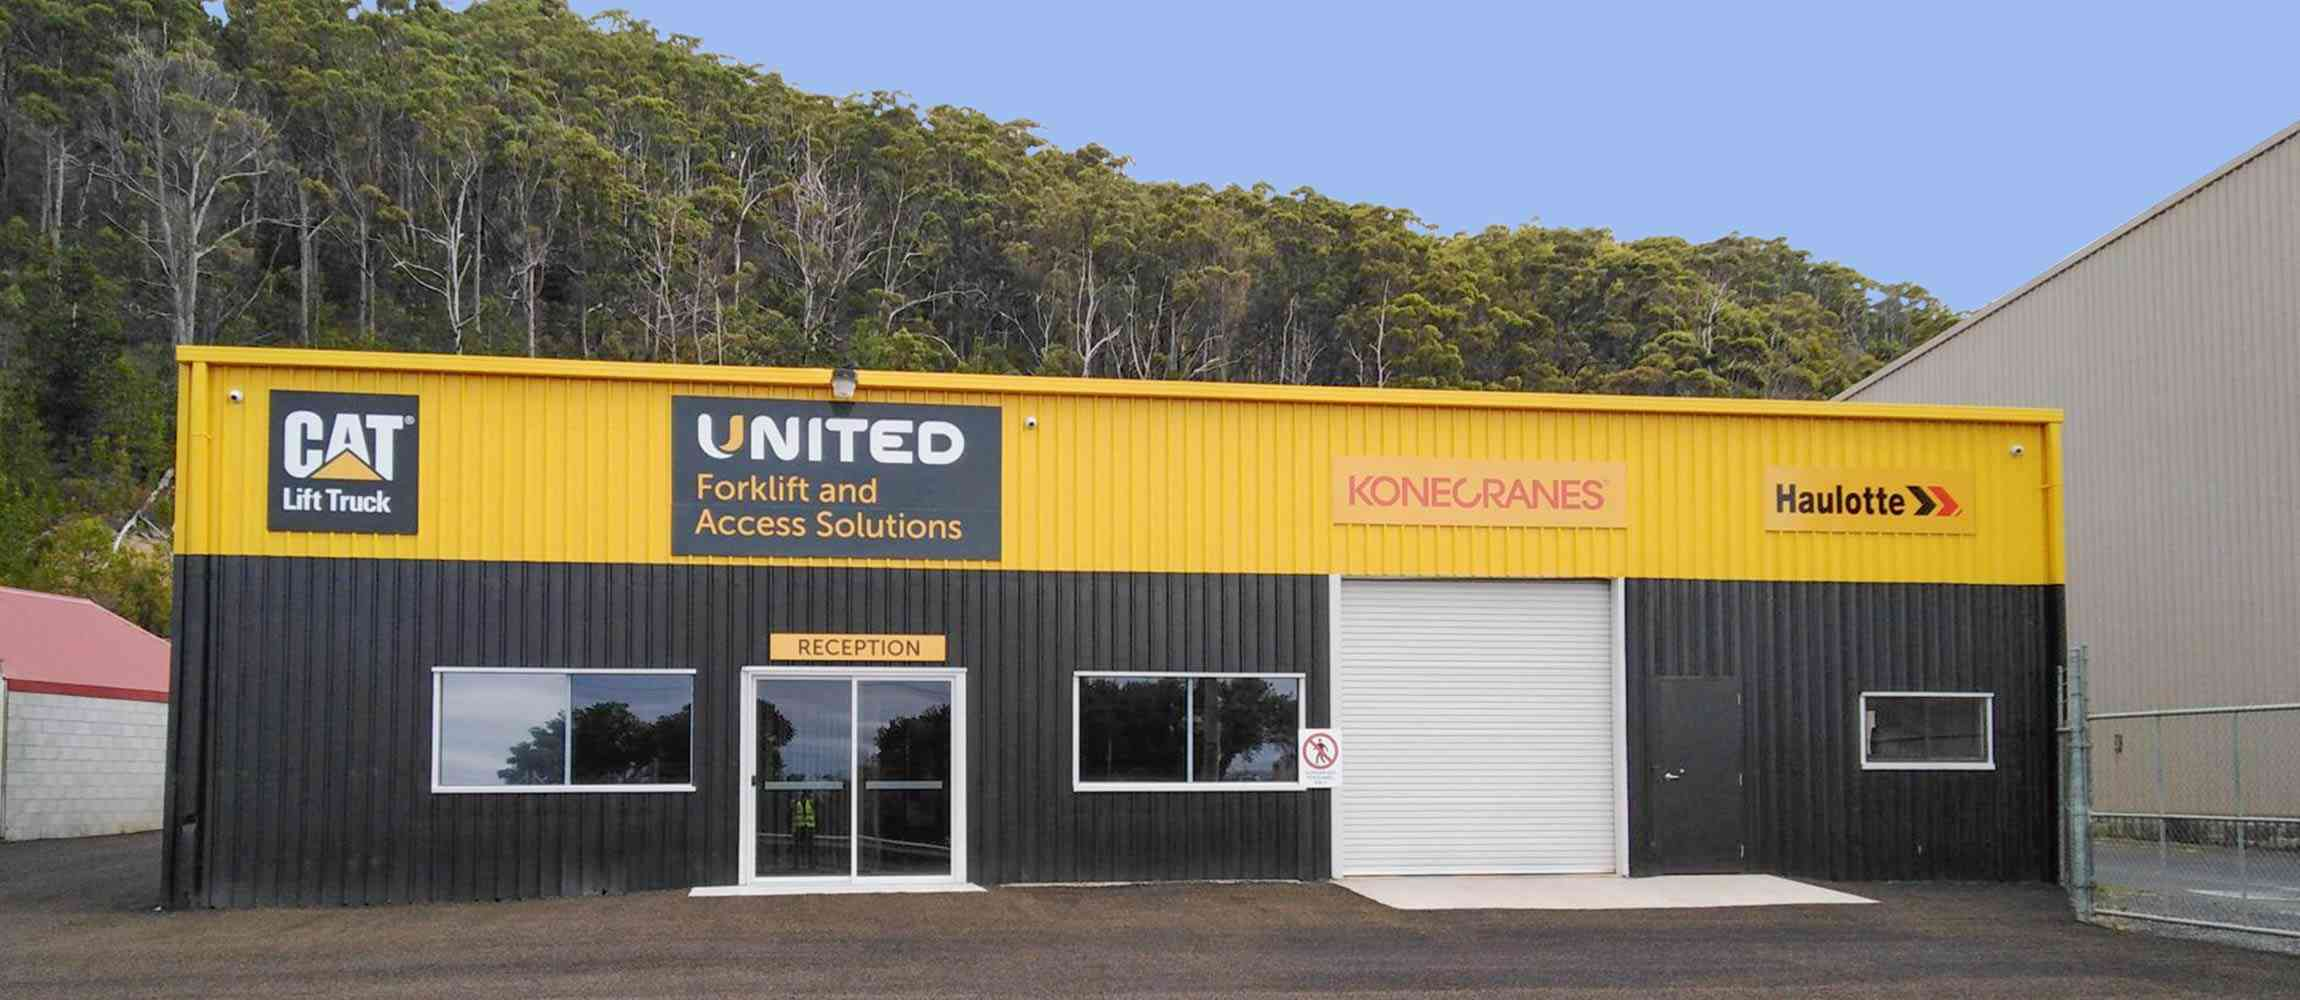 United Burnie Tasmania branch